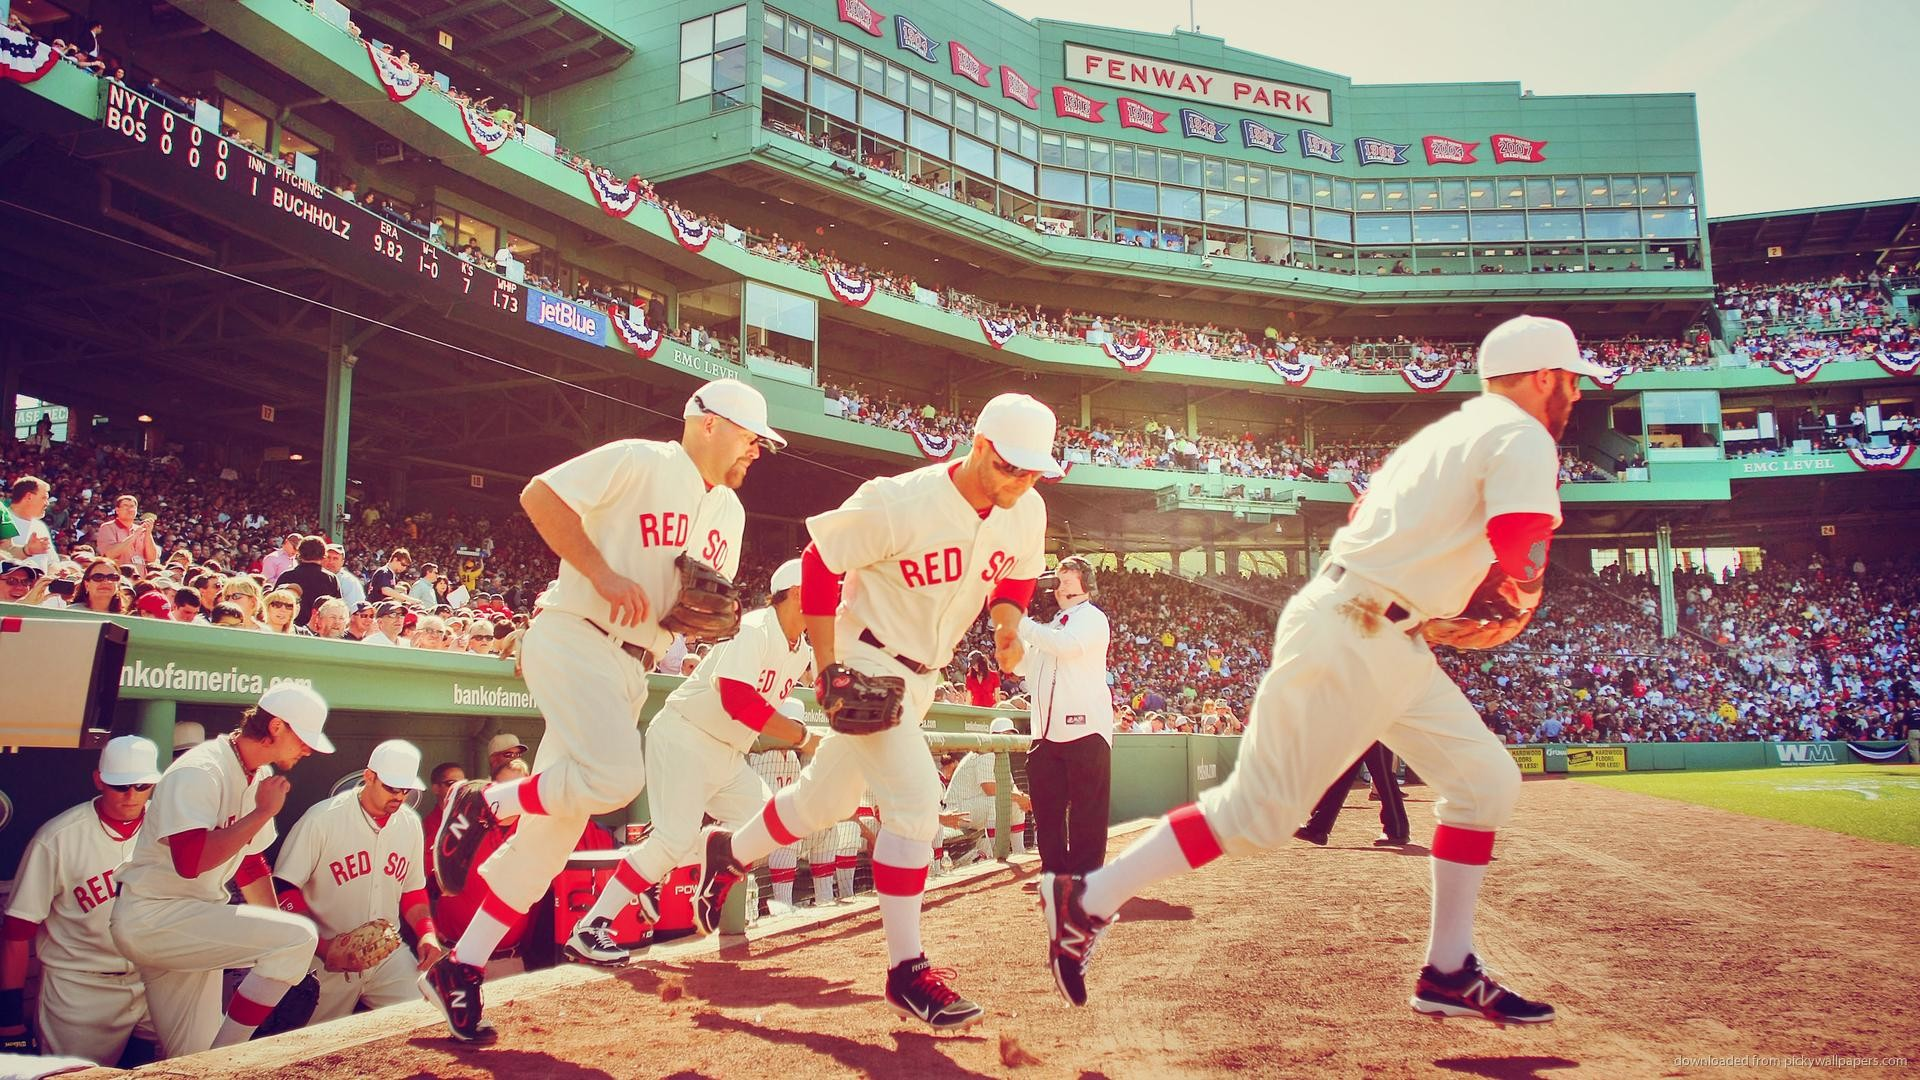 Boston-Red-Sox-starting-the-game-picture